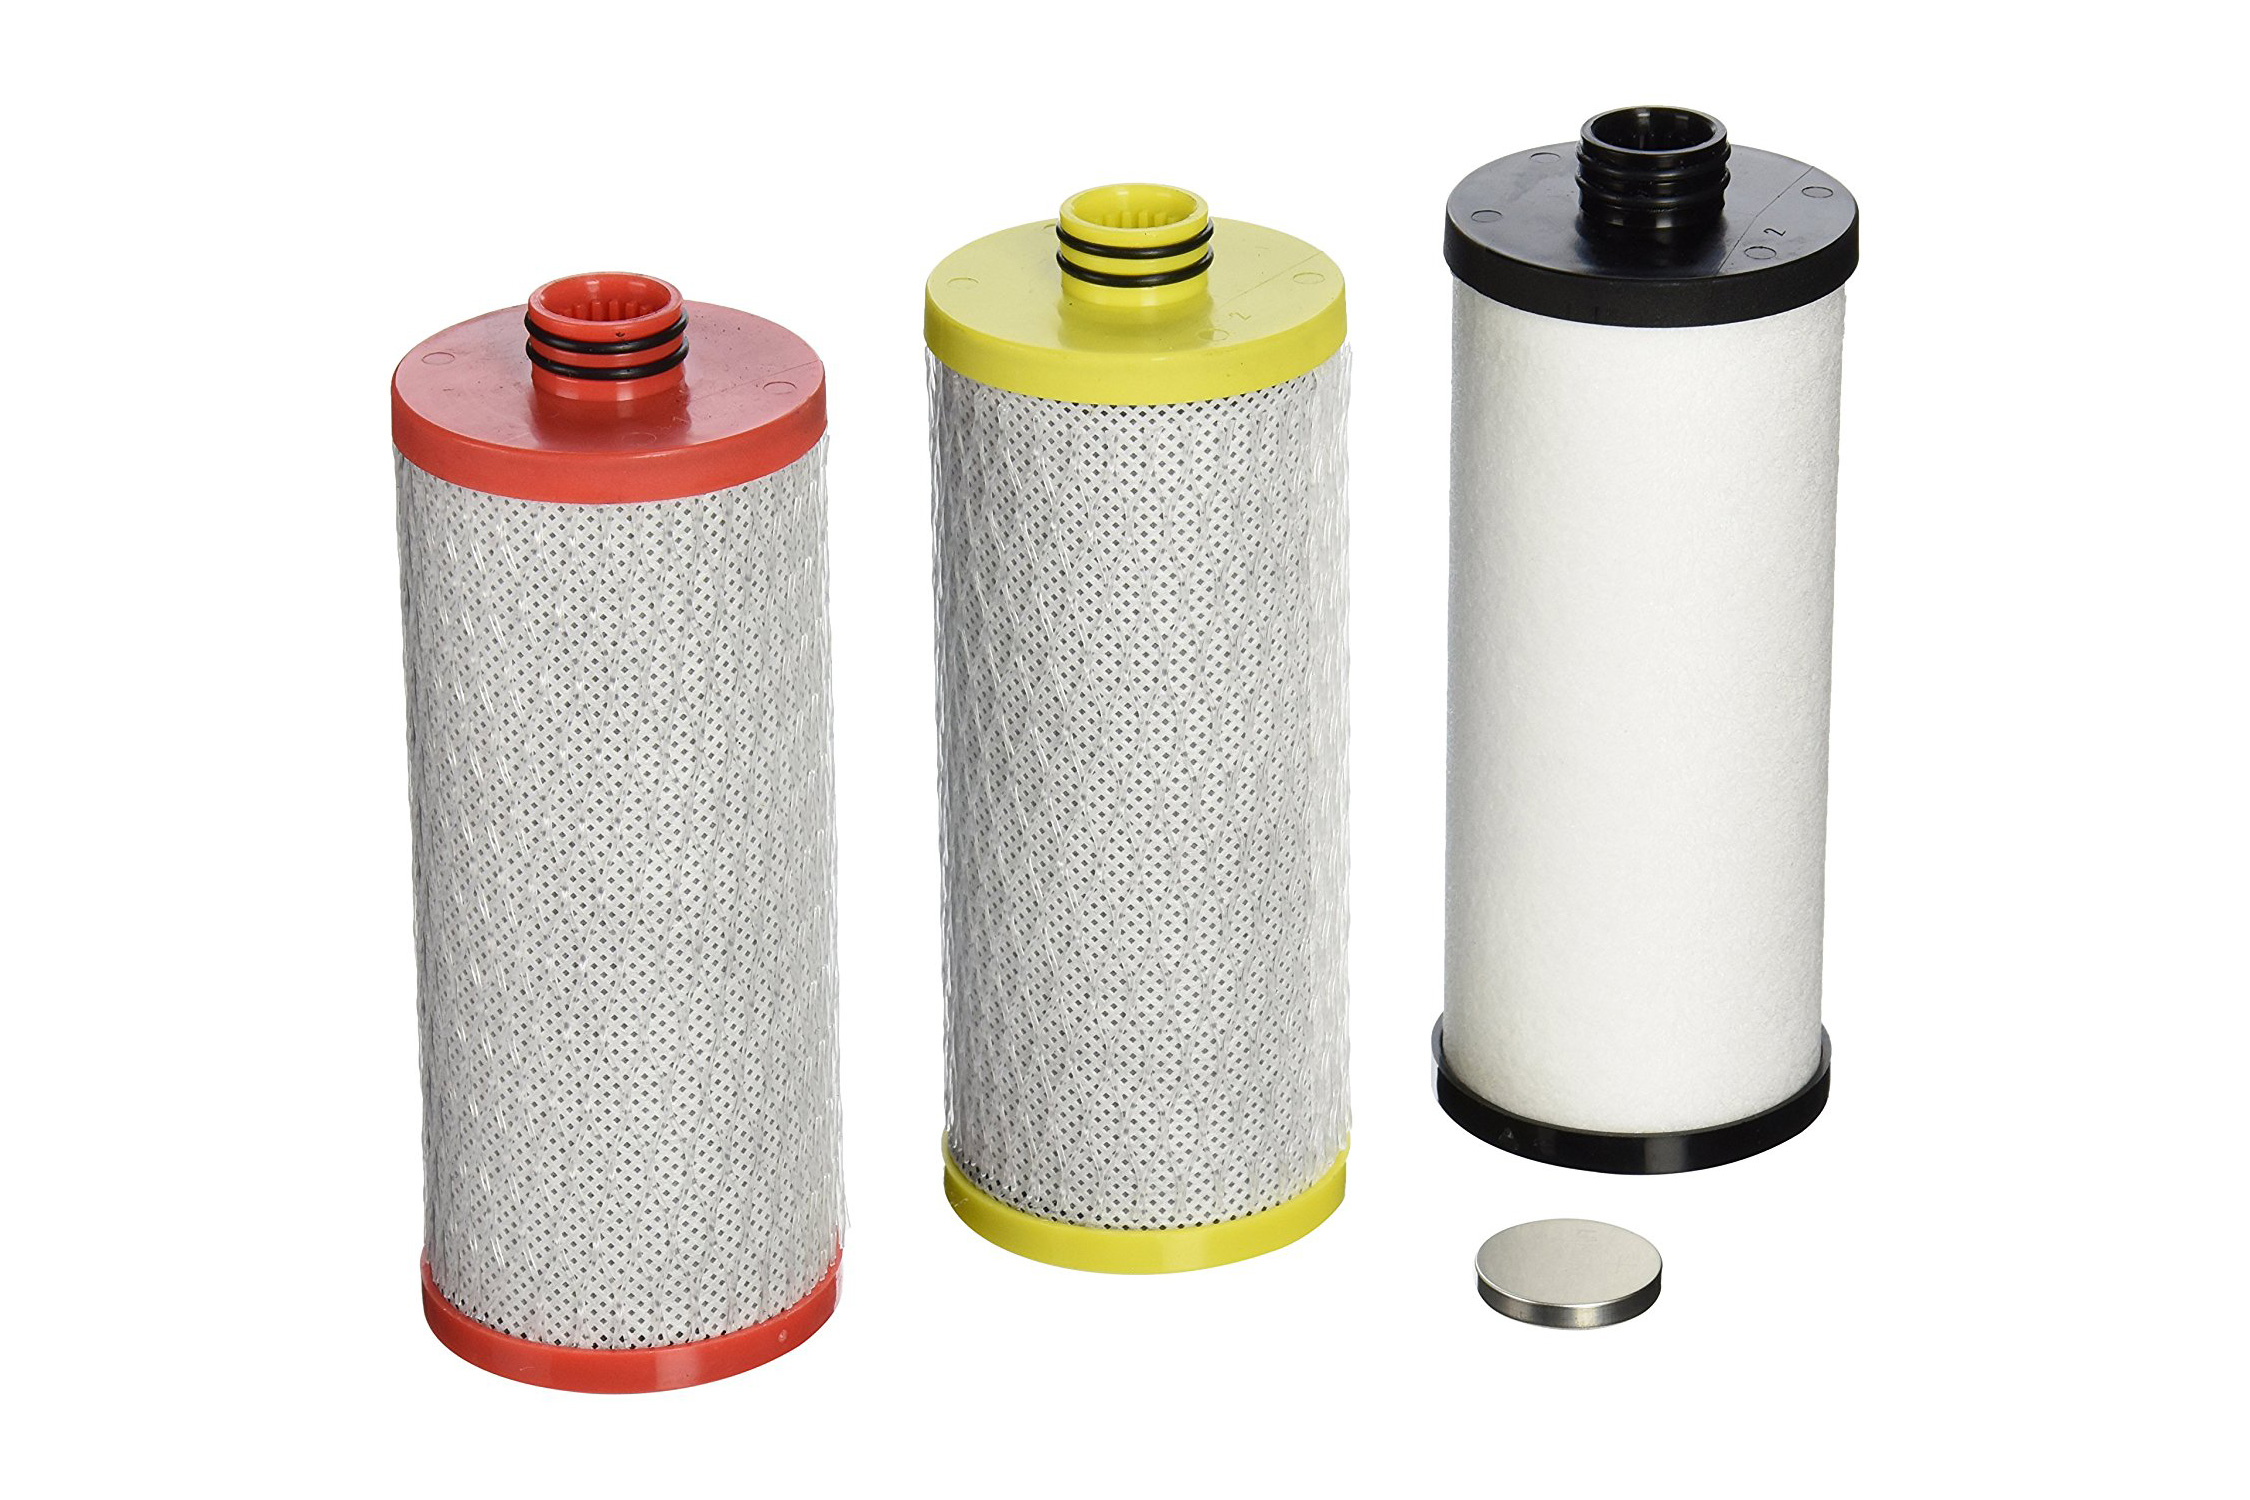 - Aquasana AQ-5300R Replacement Filter - $64.99 ($55.24 with subscribe)>Each filter provides up to 600 gallons of filtered water> Average consumption of 1200 gallons of water per year equals $129.98$/year ($110.48/year with subscribe)of replacement filter costs